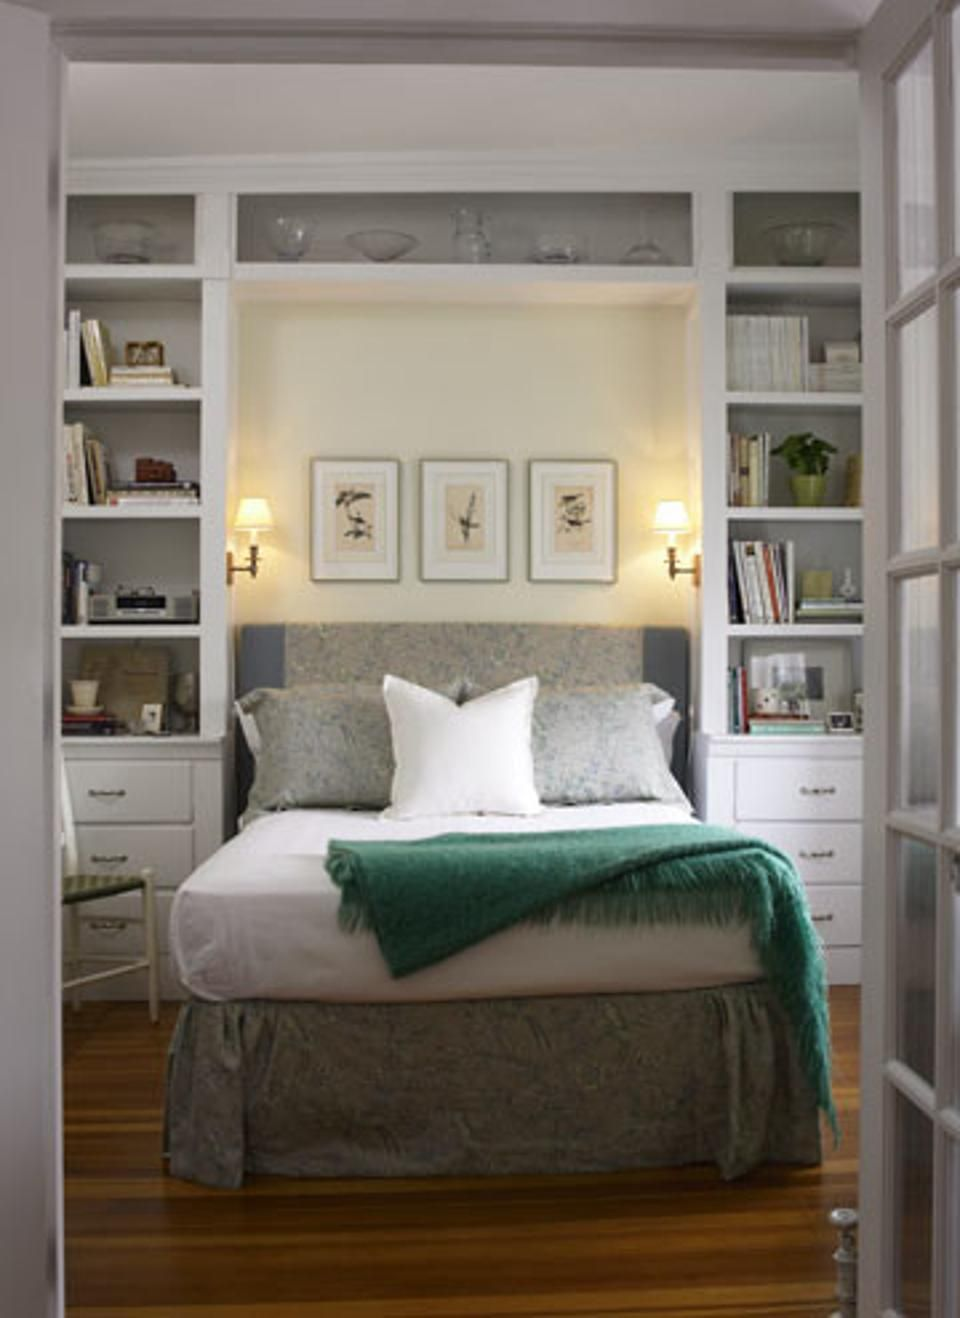 10 tips to make a small bedroom look great - Bedroom Designs For Small Bedrooms